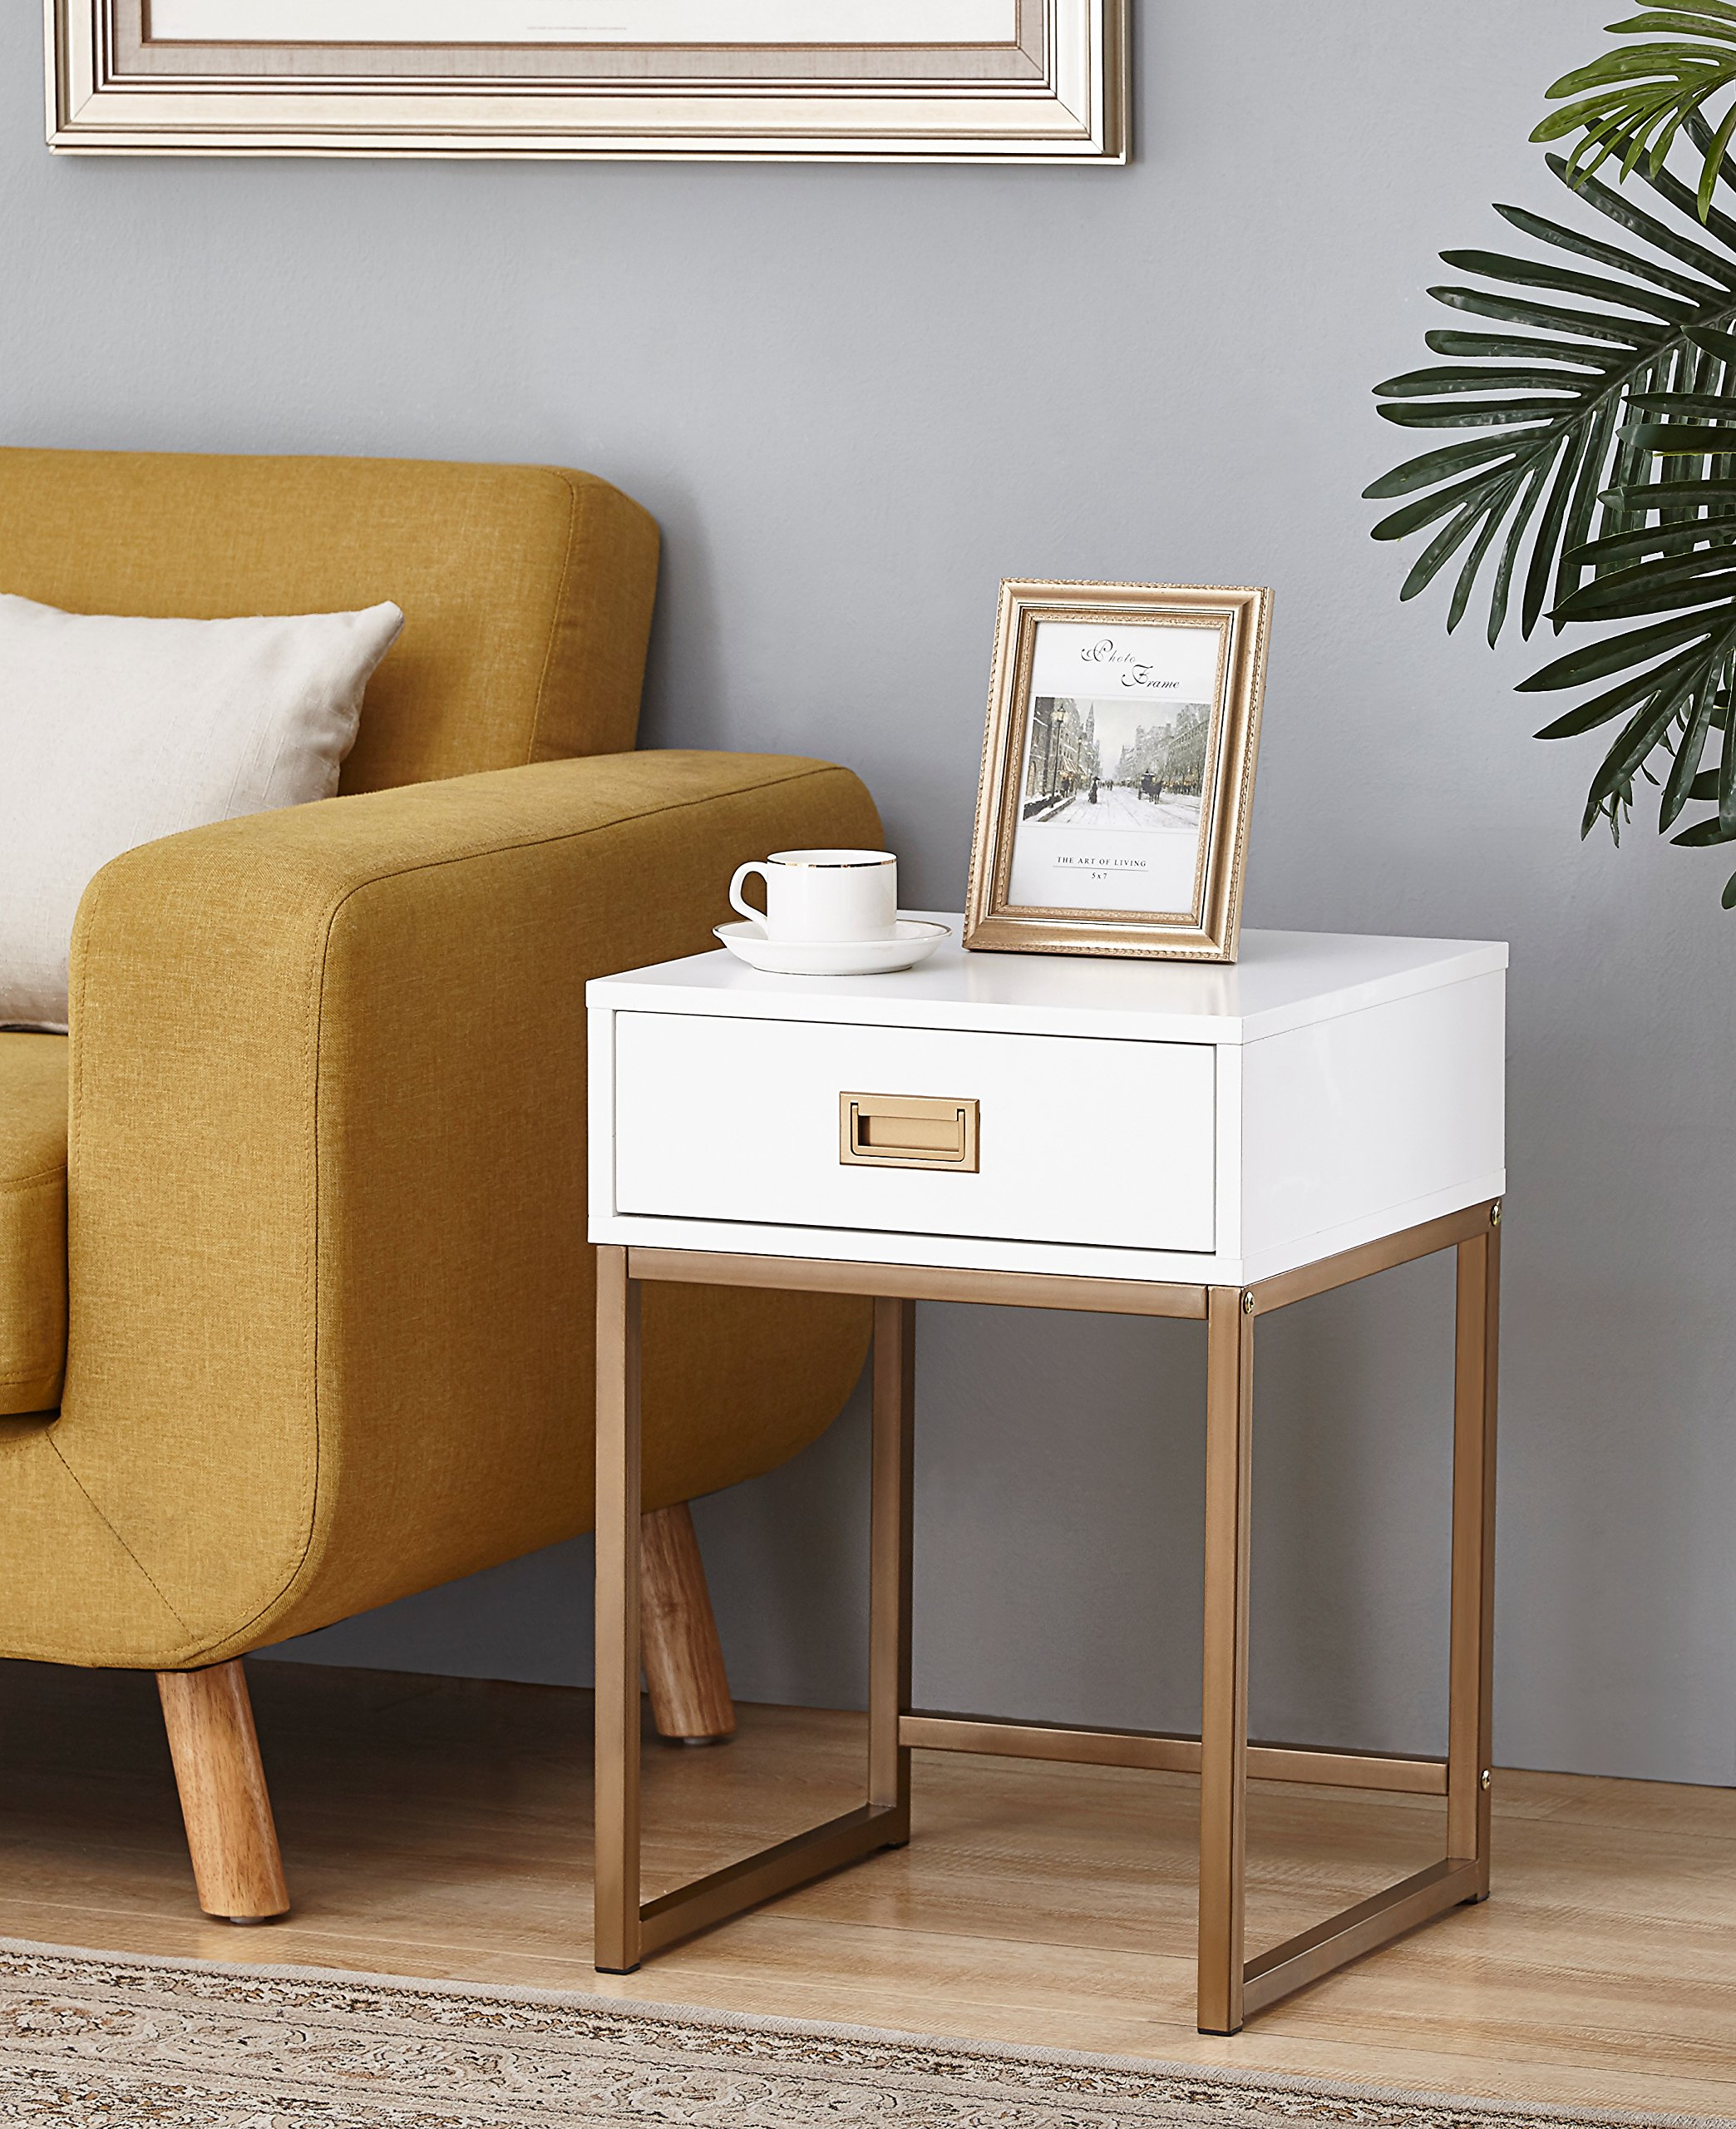 White / Golden Finish Modern Nightstand Side End Table with Drawer